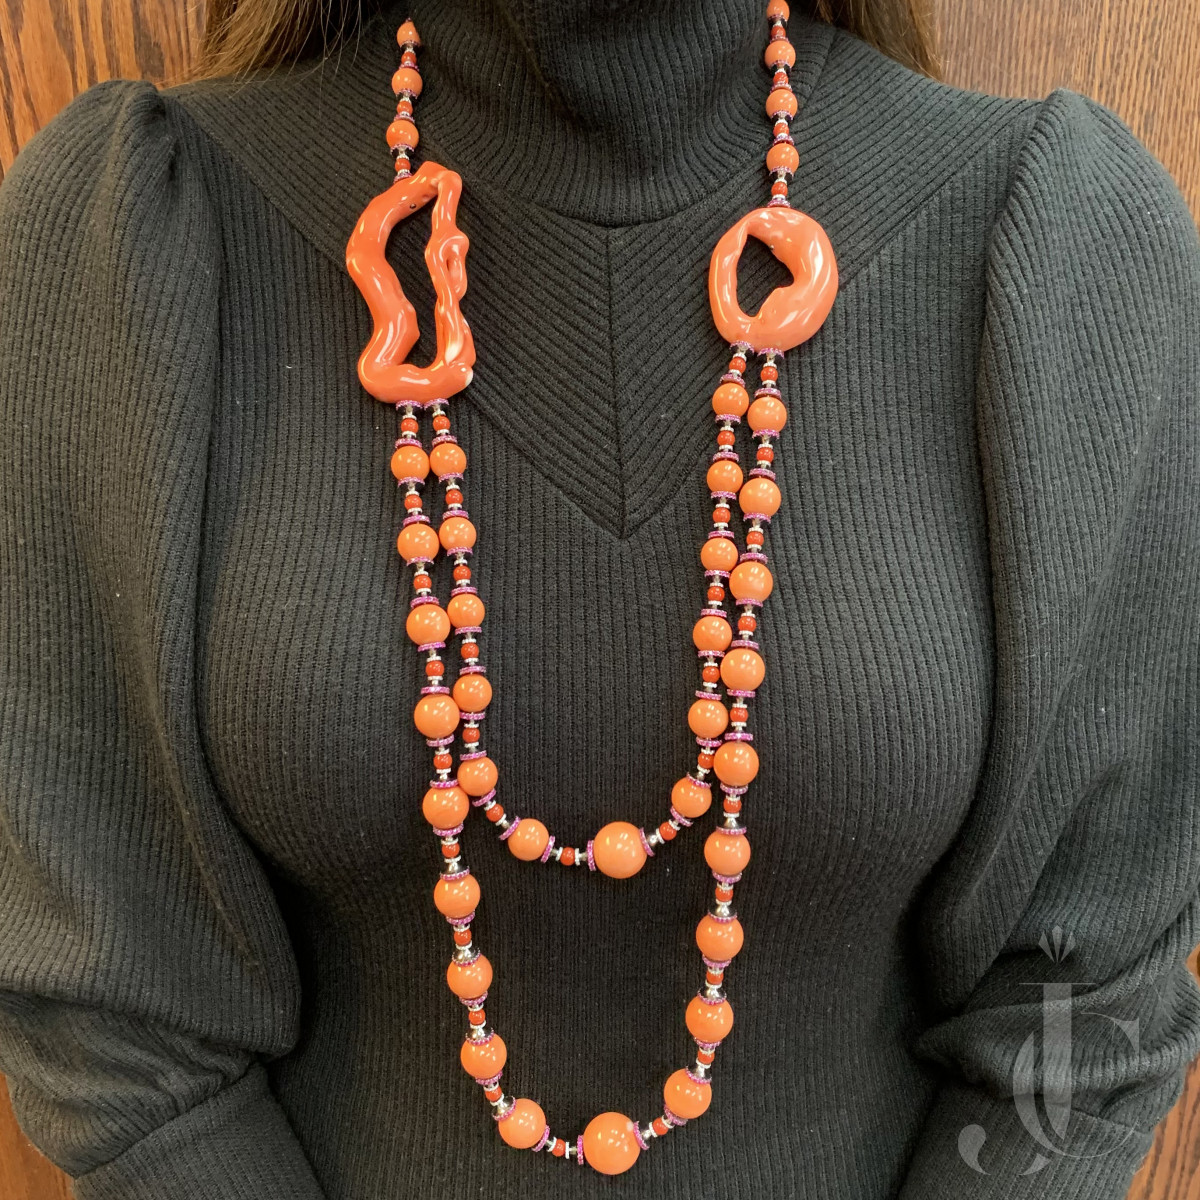 Wallace Chan Pining Beans Coral, Ruby and Diamond Necklace one of a kind